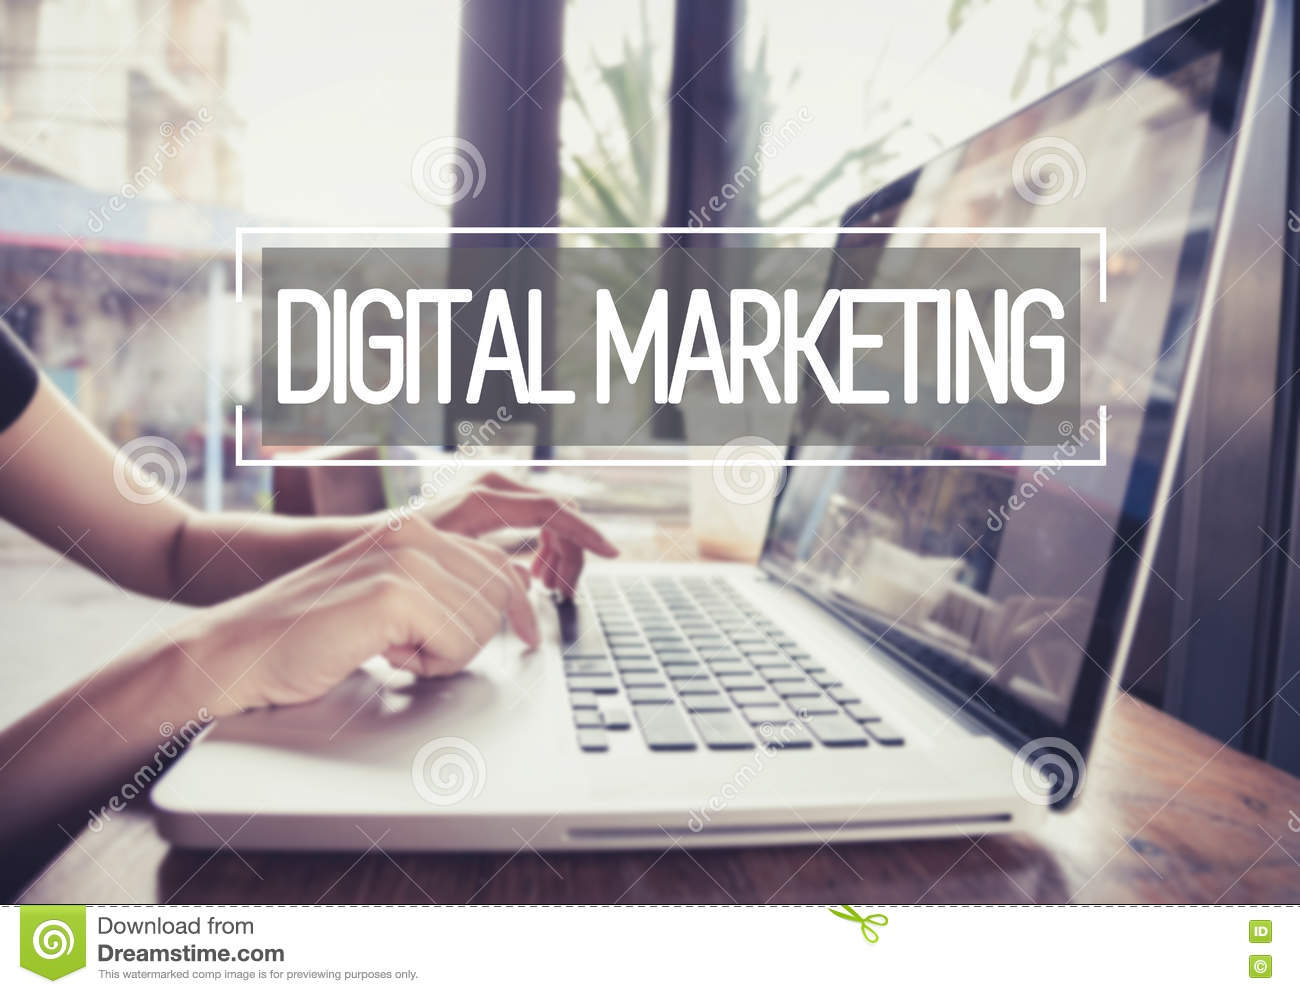 Business hand typing on a laptop keyboard with digital marketing.